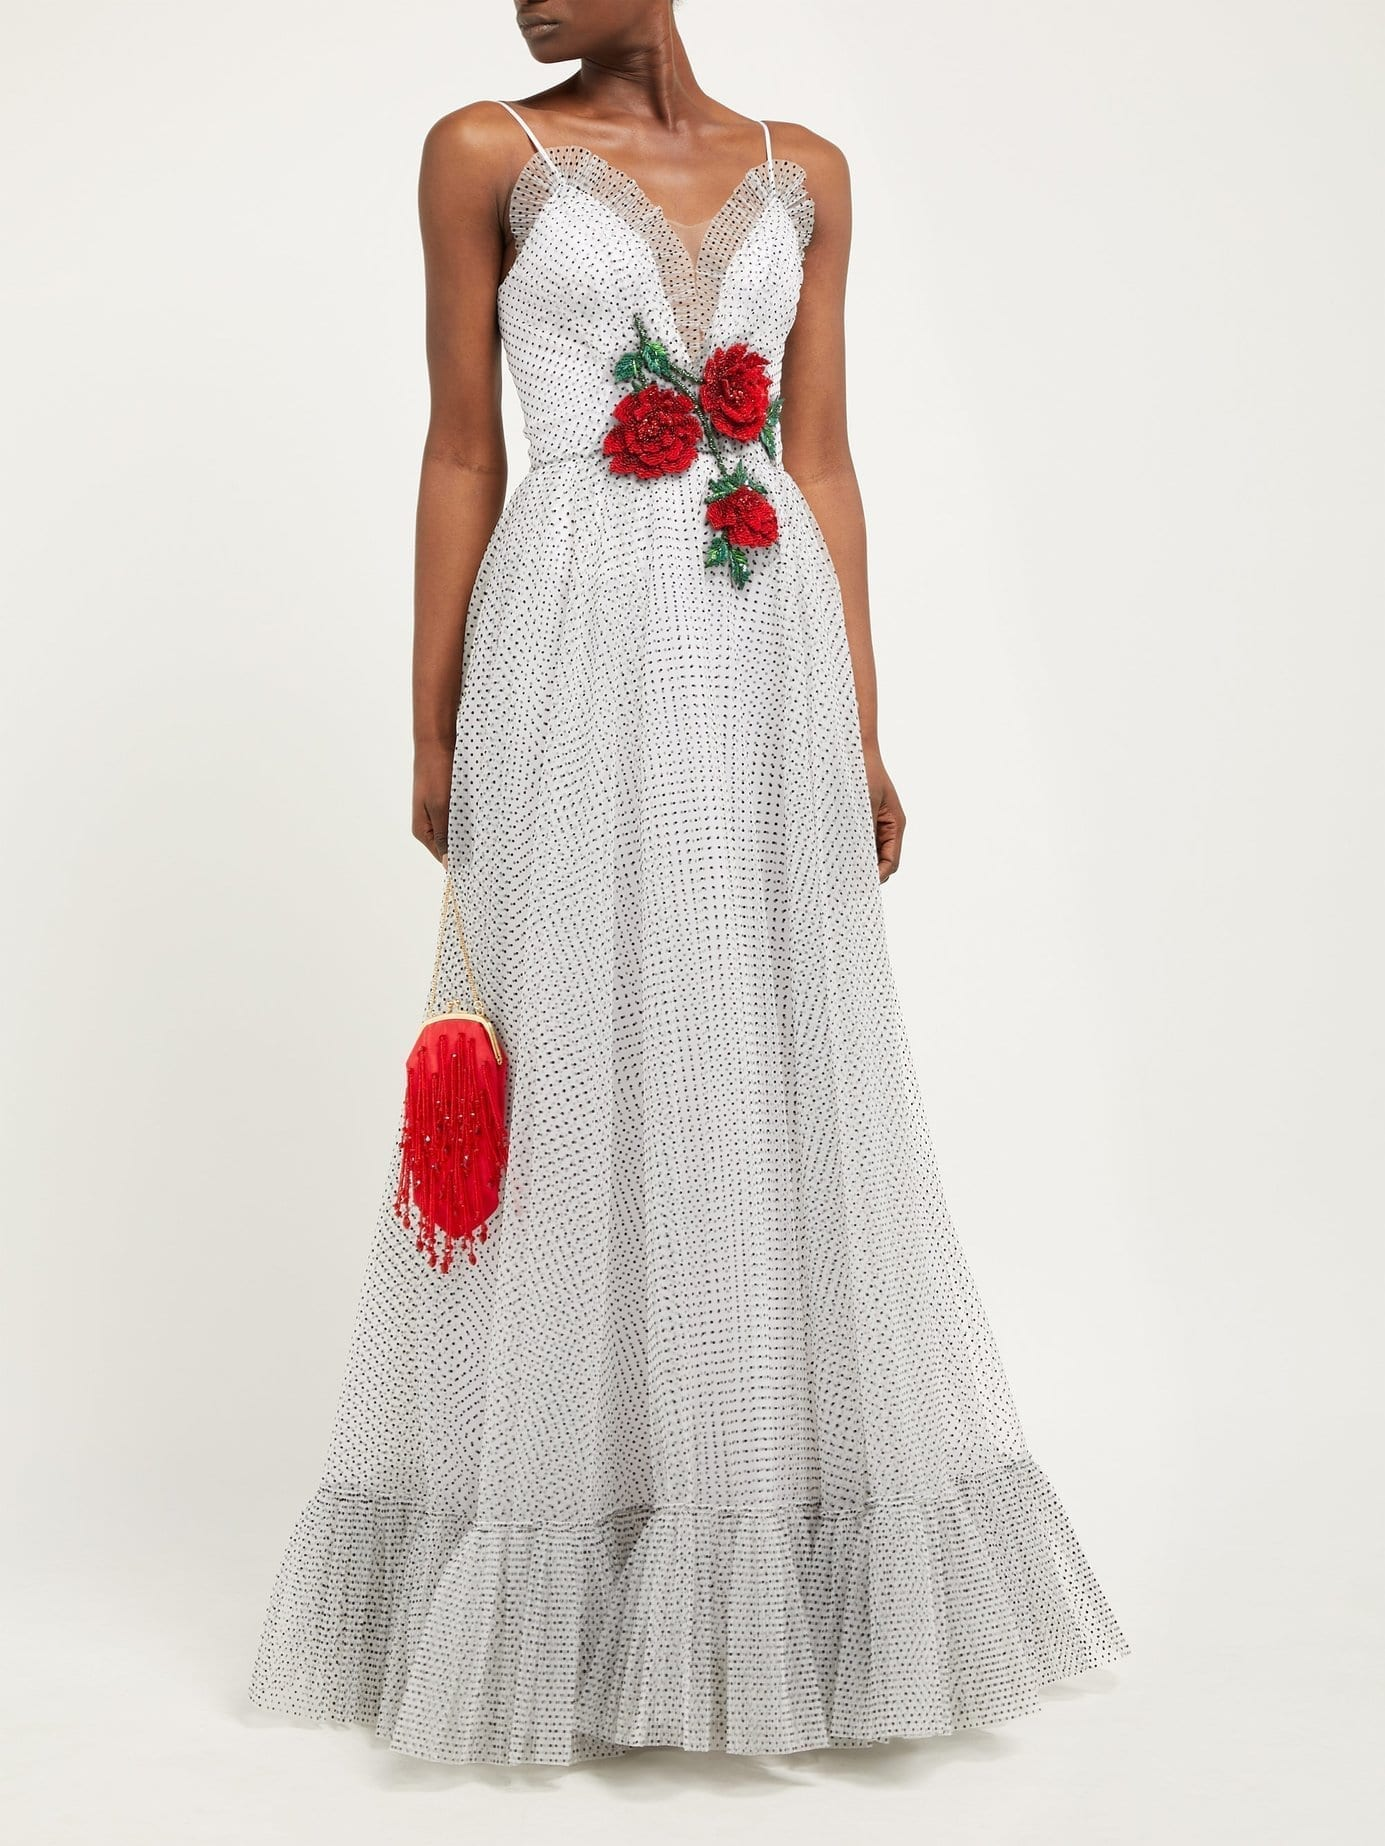 RODARTE Sequinned Rose-Appliquéd Polka-Dot Mesh White Gown